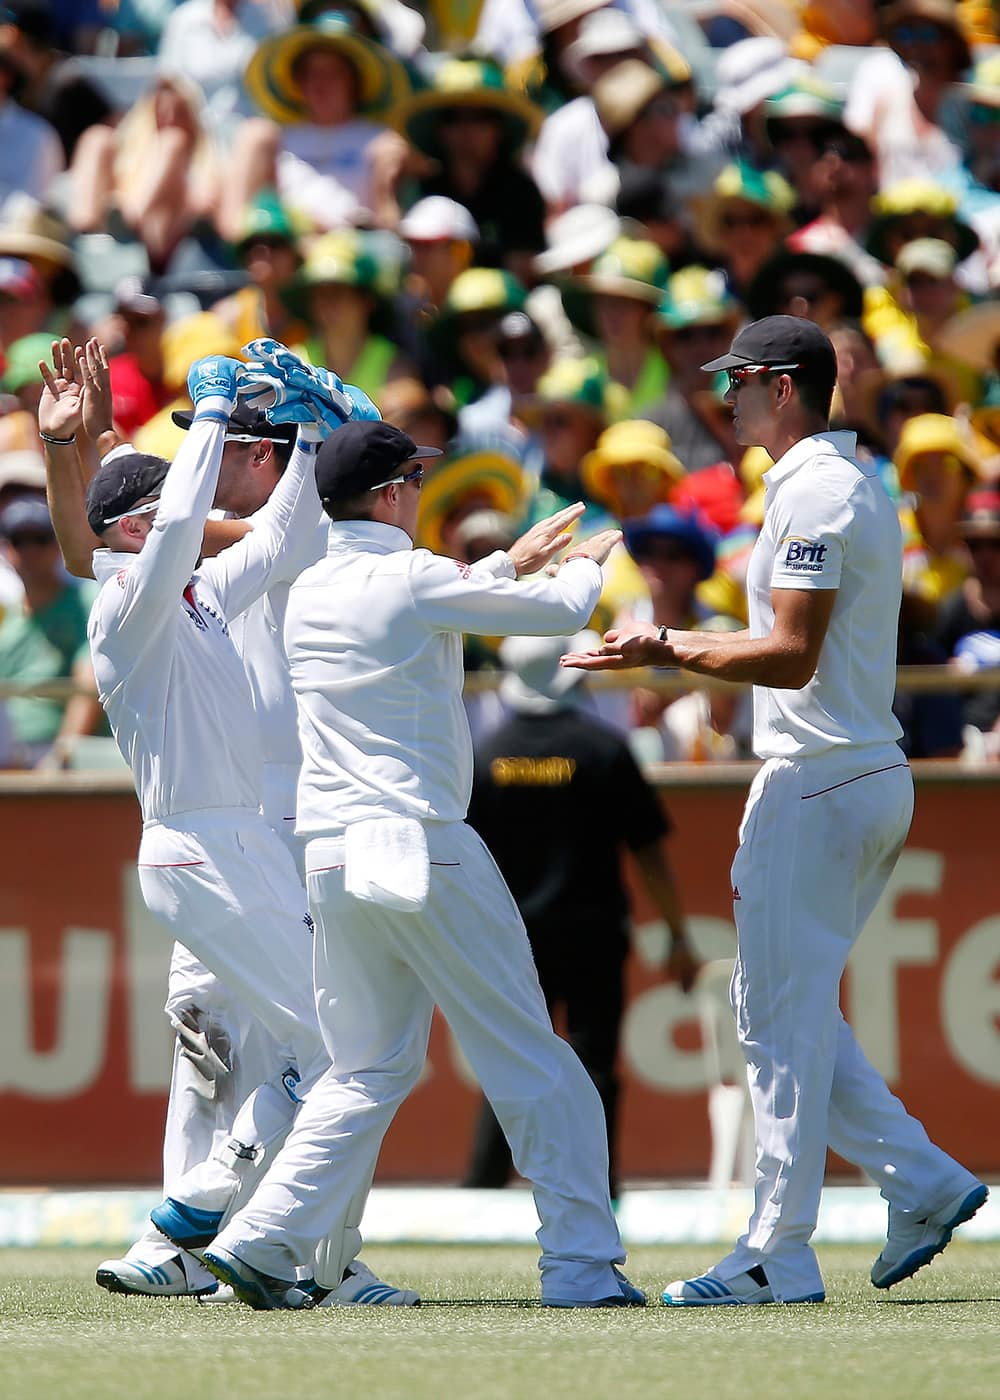 England's Kevin Pietersen is congratulated by team mates after taking the catch of Australia's George Bailey on the first day of the Ashes cricket test match in Perth, Australia.